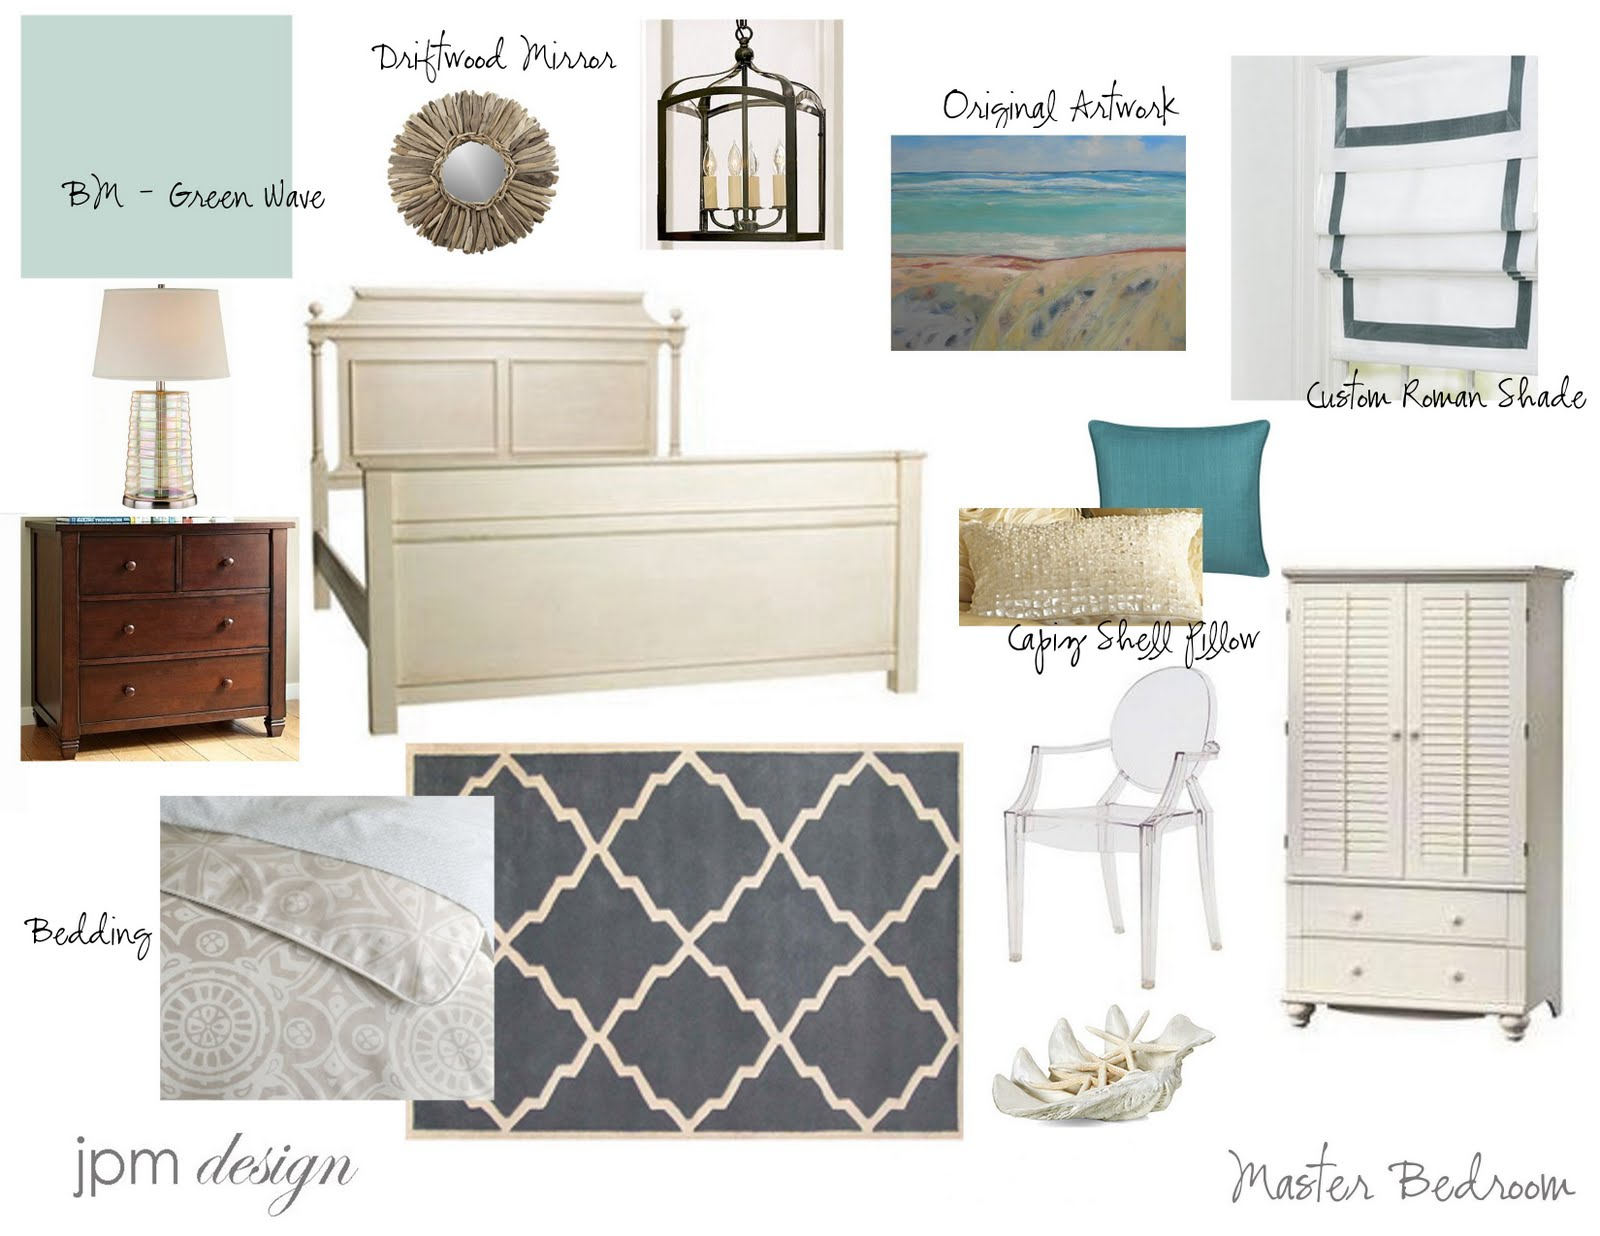 Photos Of Beach Inspired Bedrooms: JPM Design: Project Update: Master Bedroom